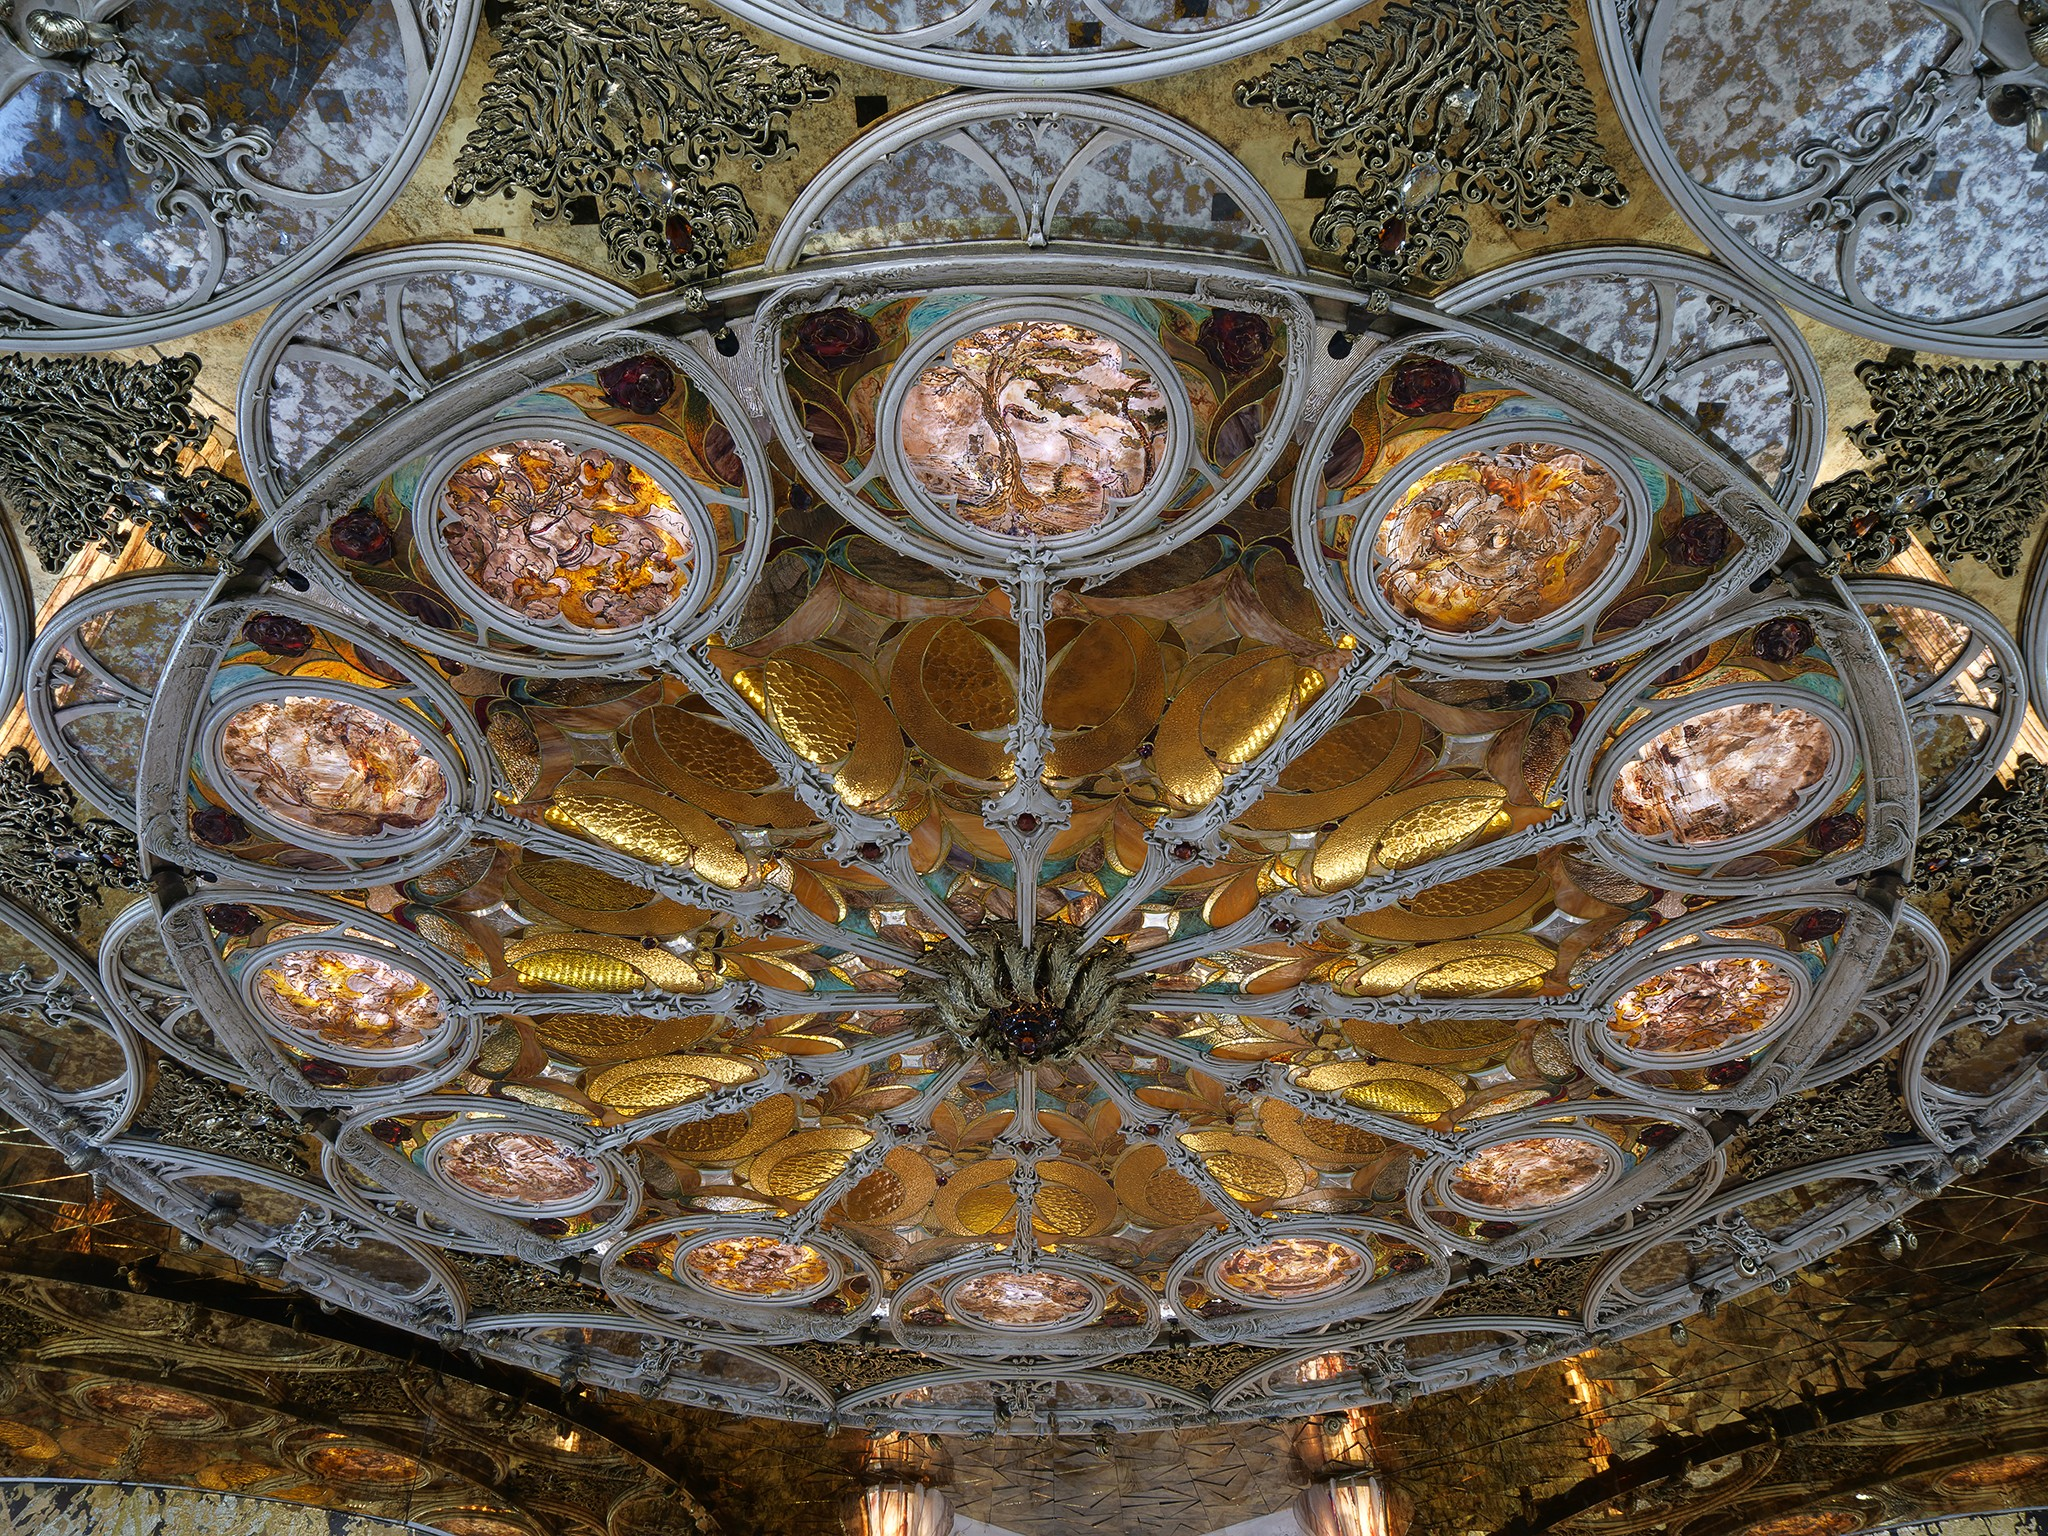 photography of the ceiling for the architect's portfolio